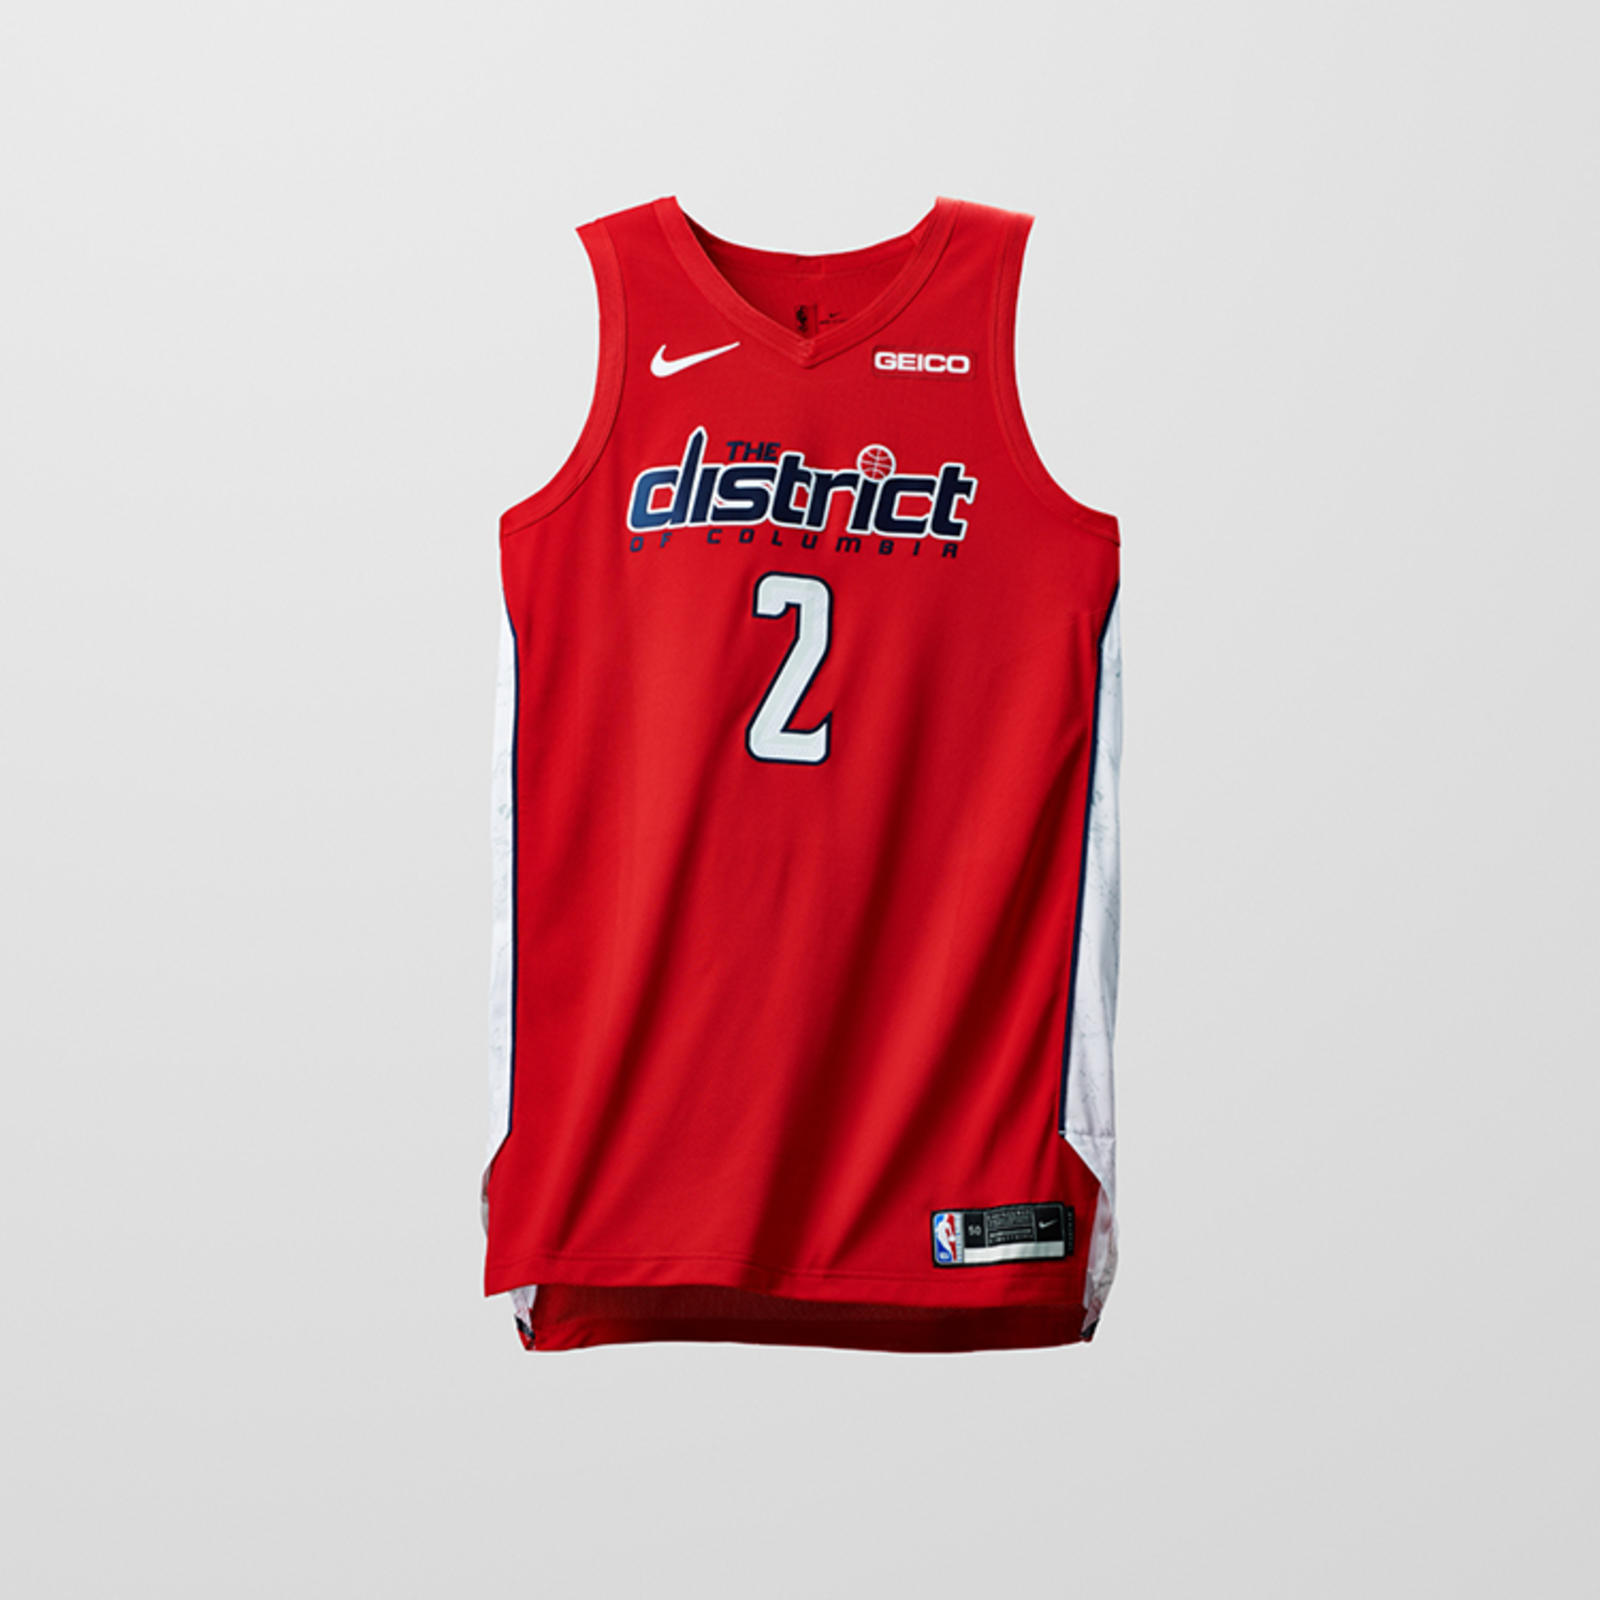 Select teams will debut their uniforms on-court as a part of the NBA s  annual Christmas Day lineup of games. 818004947